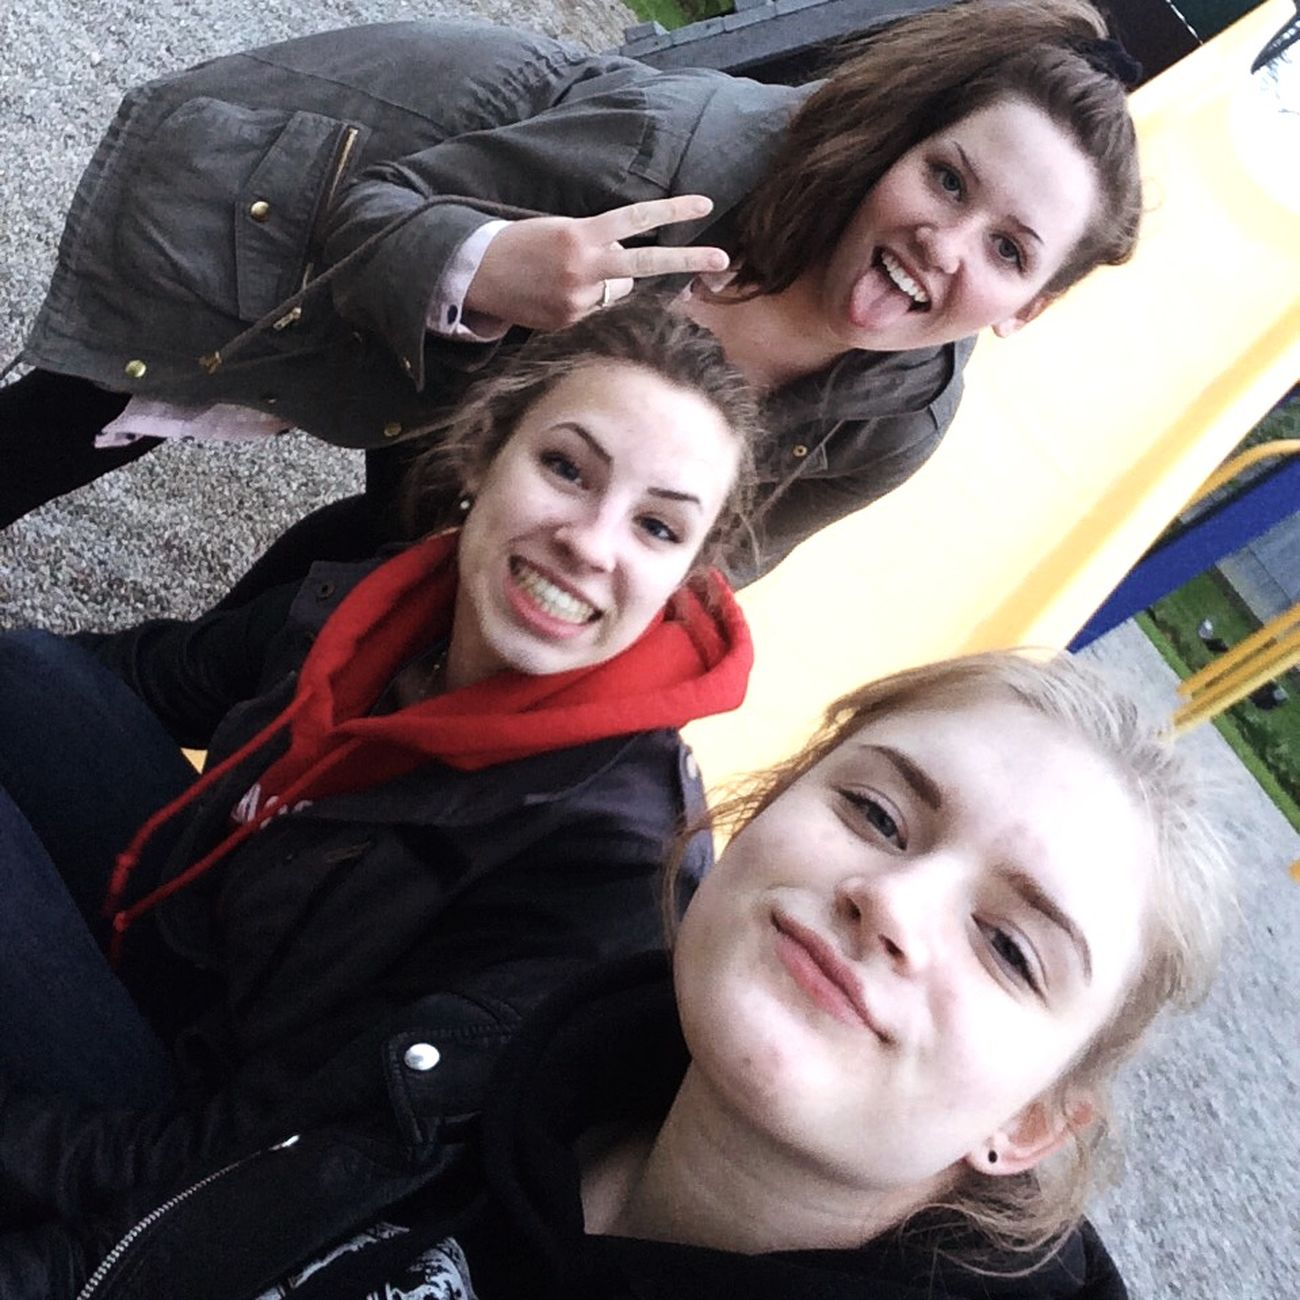 Weirdfaces Girls Teens Park